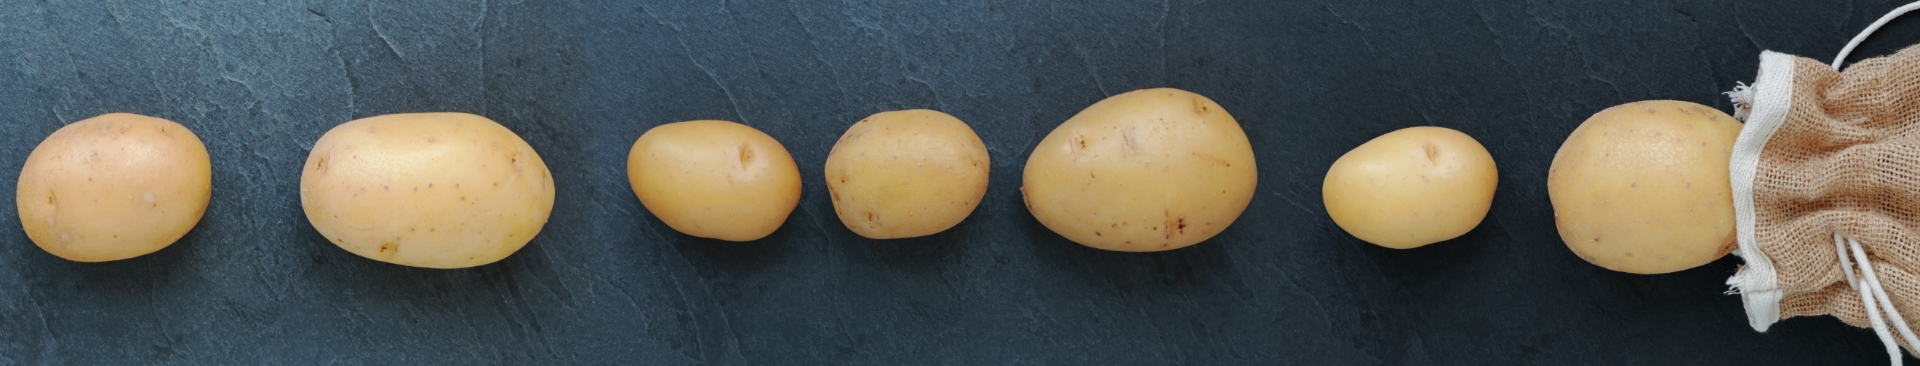 Potatoes in a row